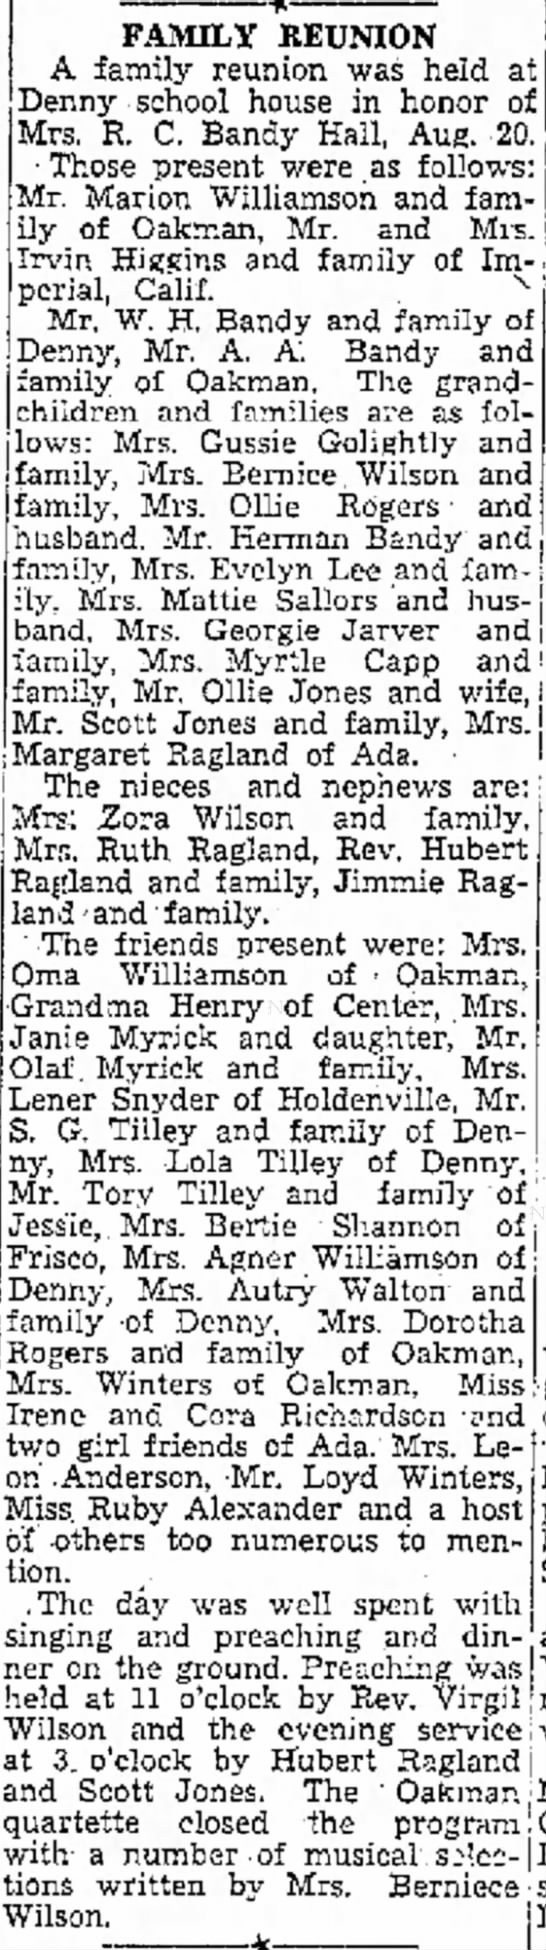 Bandy Family Reunion August 20, 1939 in Denny, Oklahoma - husband following . entitled-to and FAMILY...